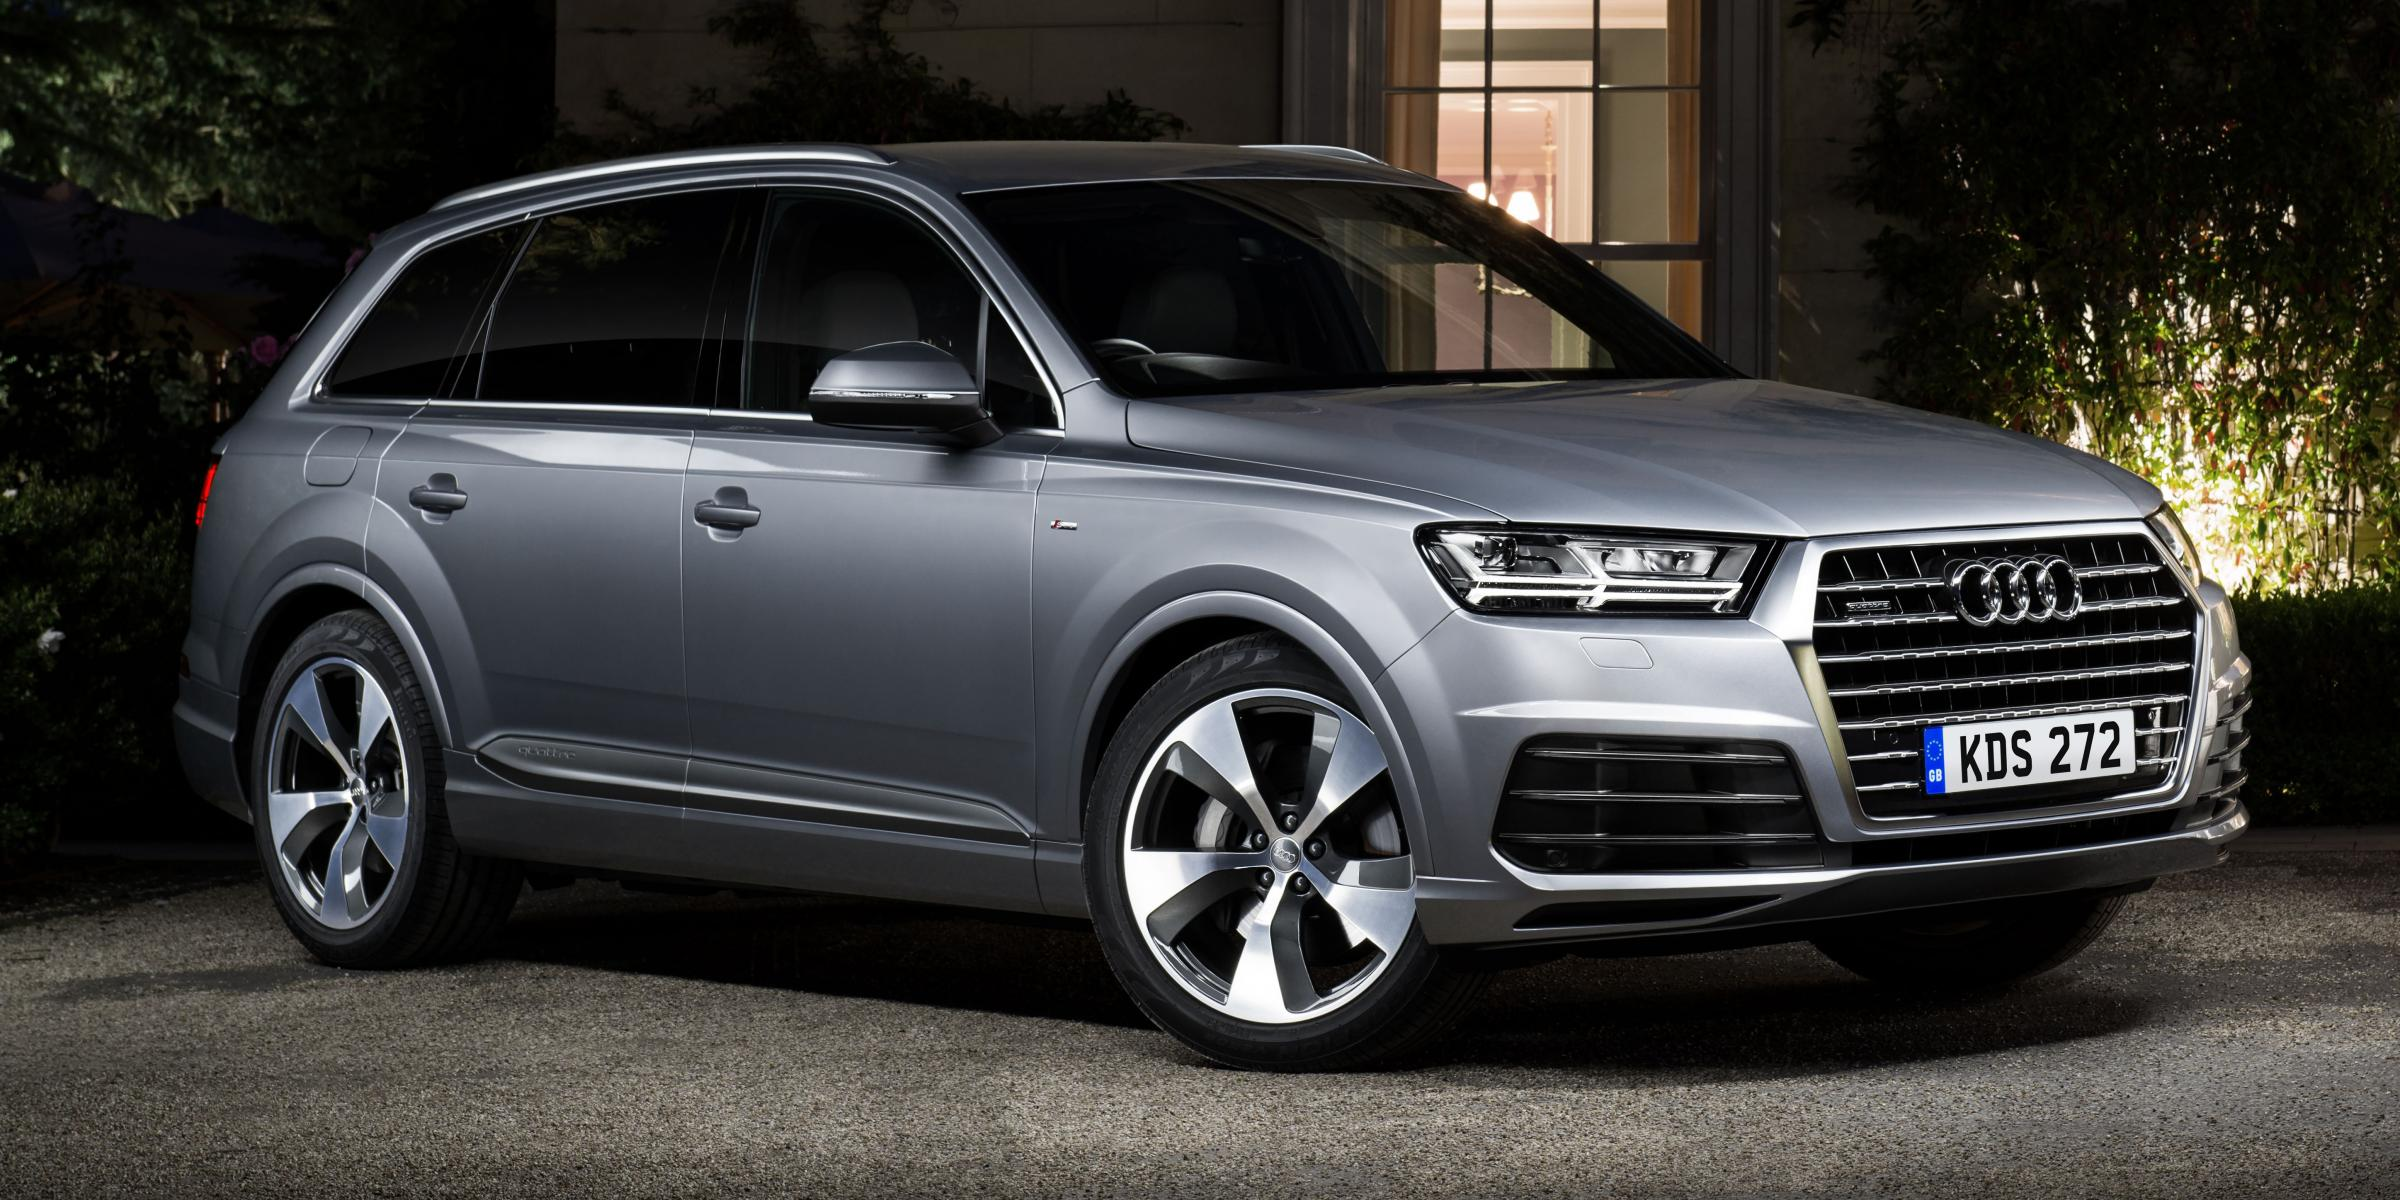 THE NEAT clean lines of Audi's new 'thinner' Q7 SUV